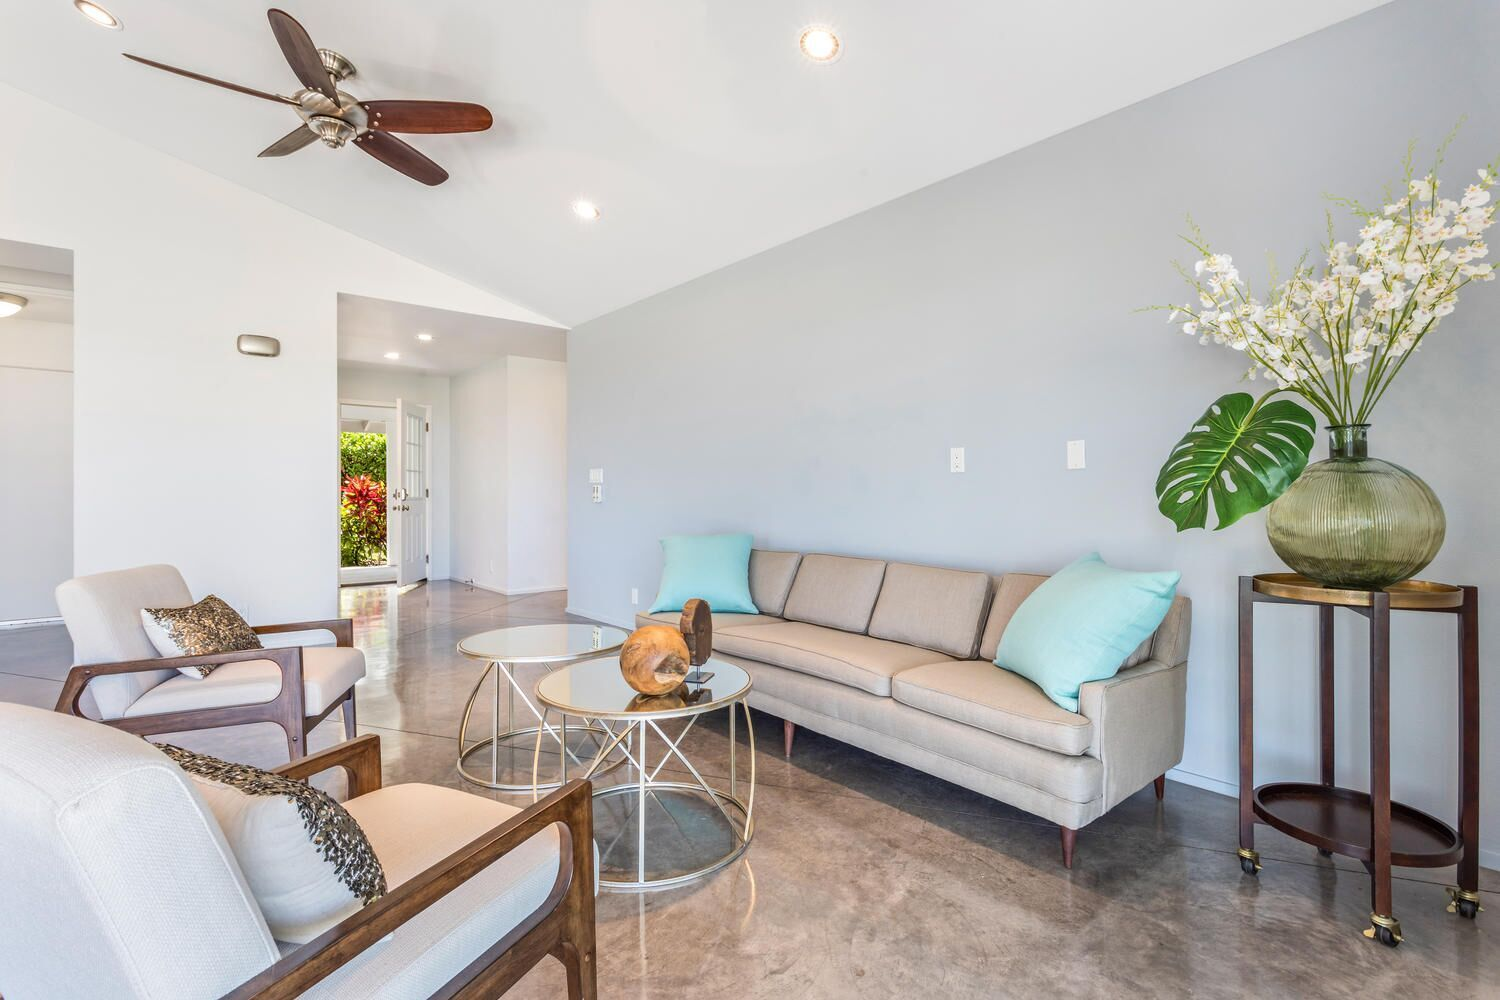 Top 5 Staging Tips to Help Sell Your Home - Hawaii Real Estate ...